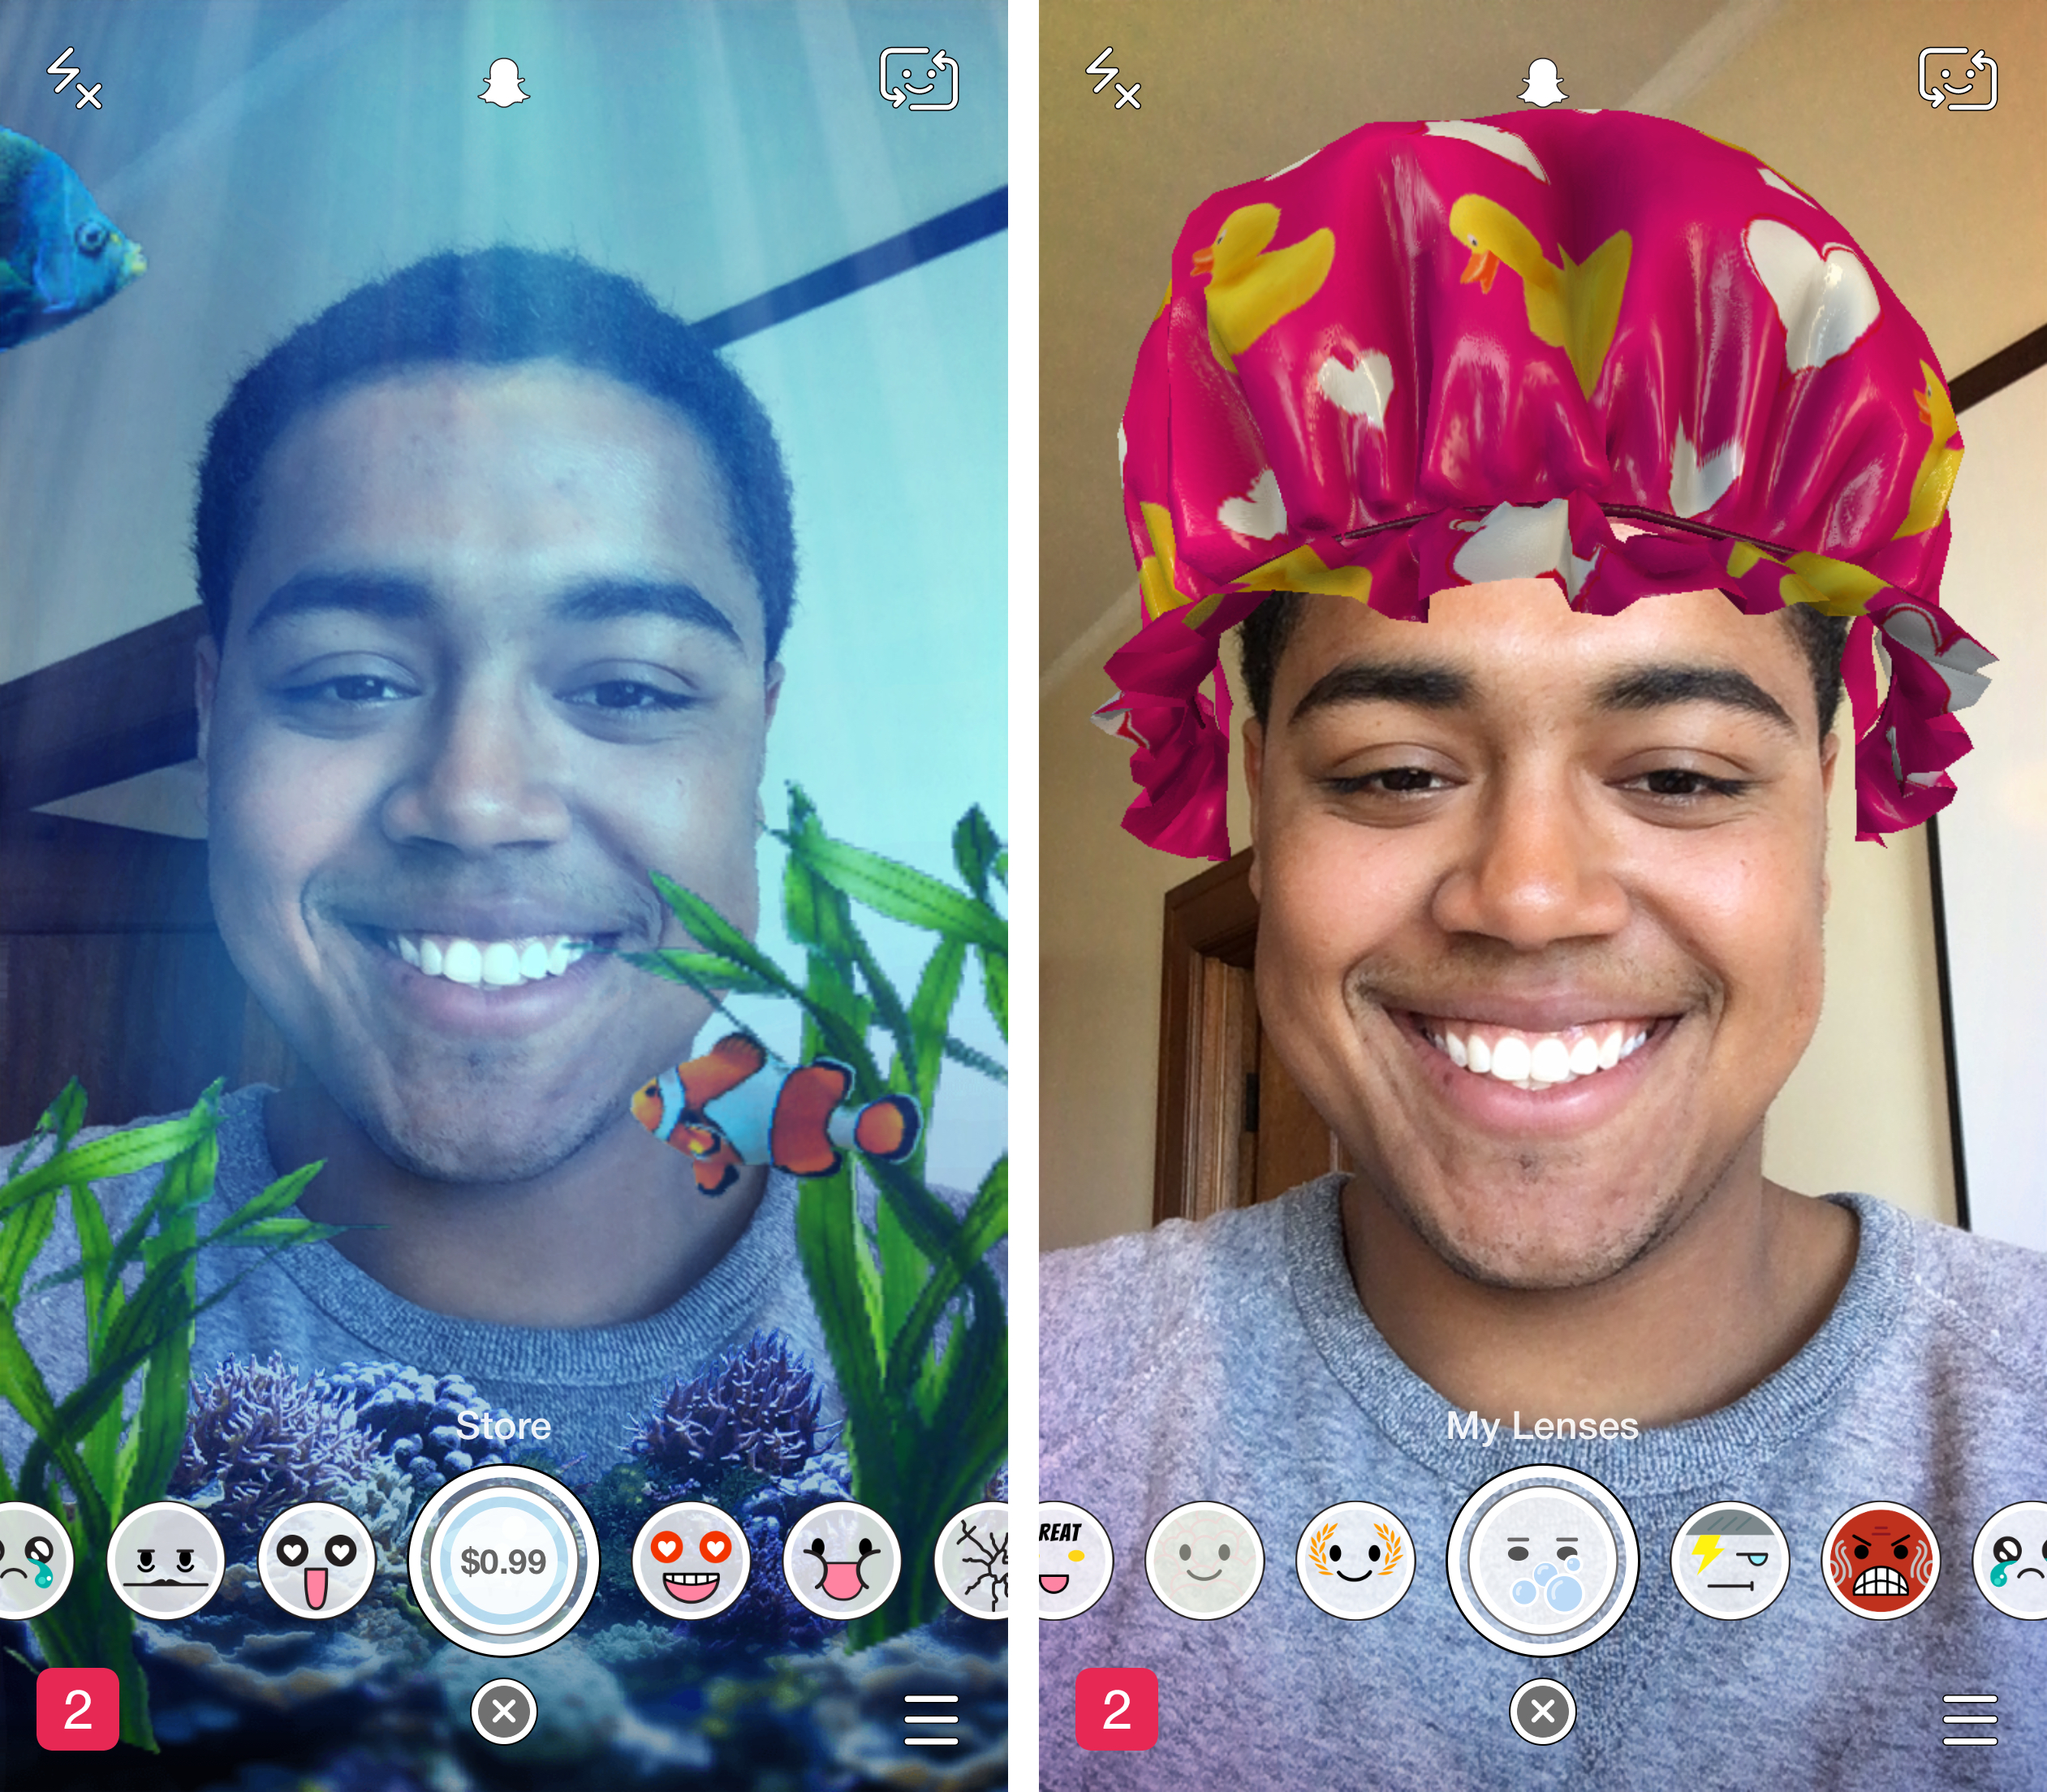 Snapchat introduces a 'lens store' to adorn your selfies with 99-cent filters - The Verge